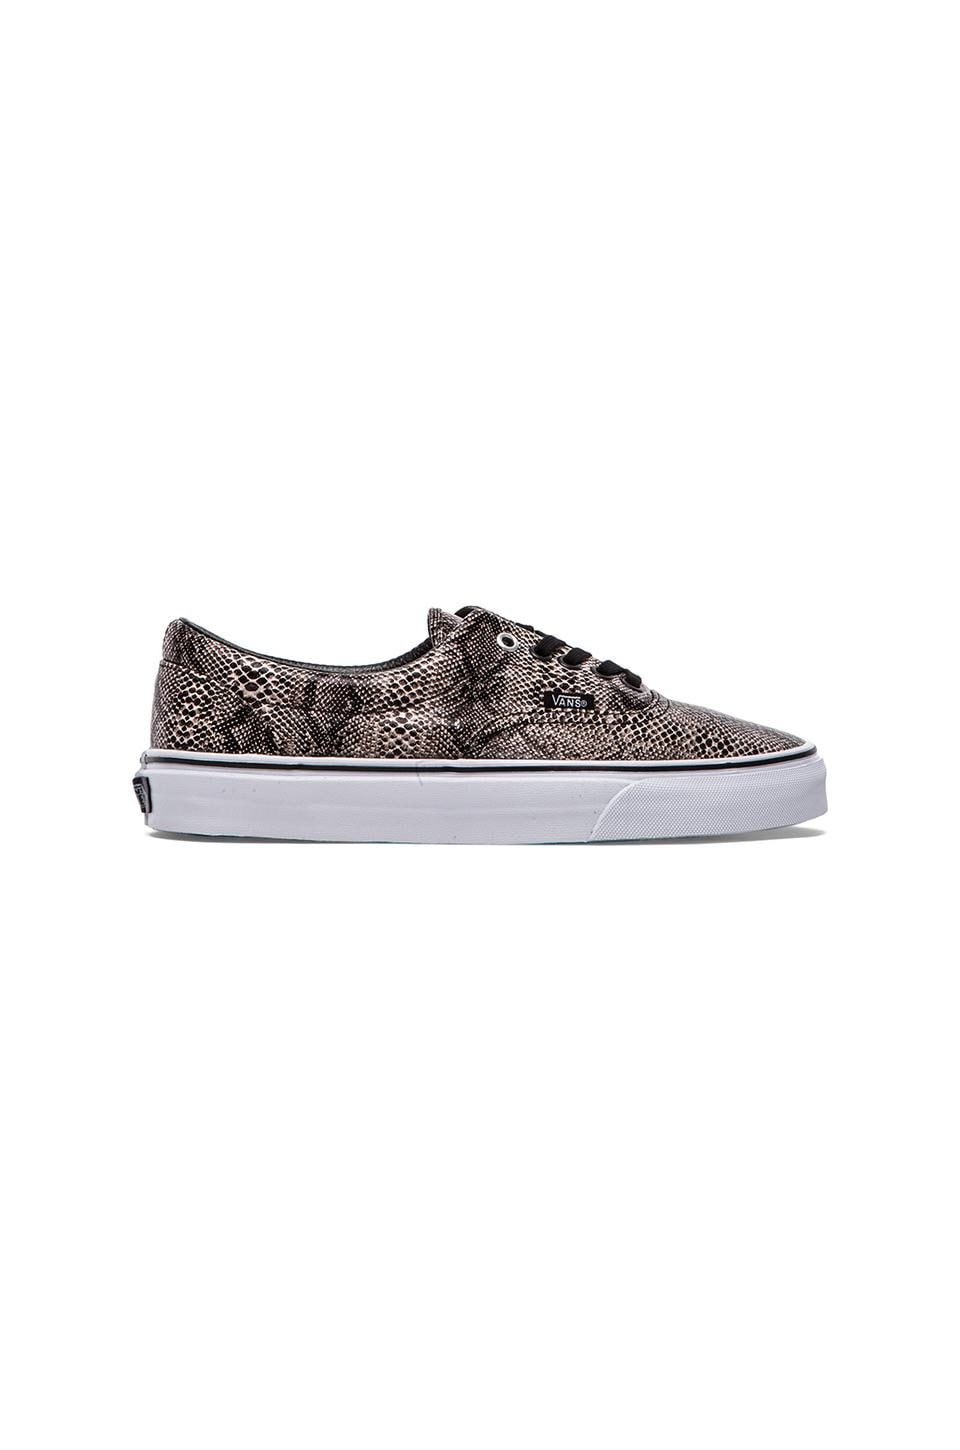 Vans Era Snake in Black & Khaki